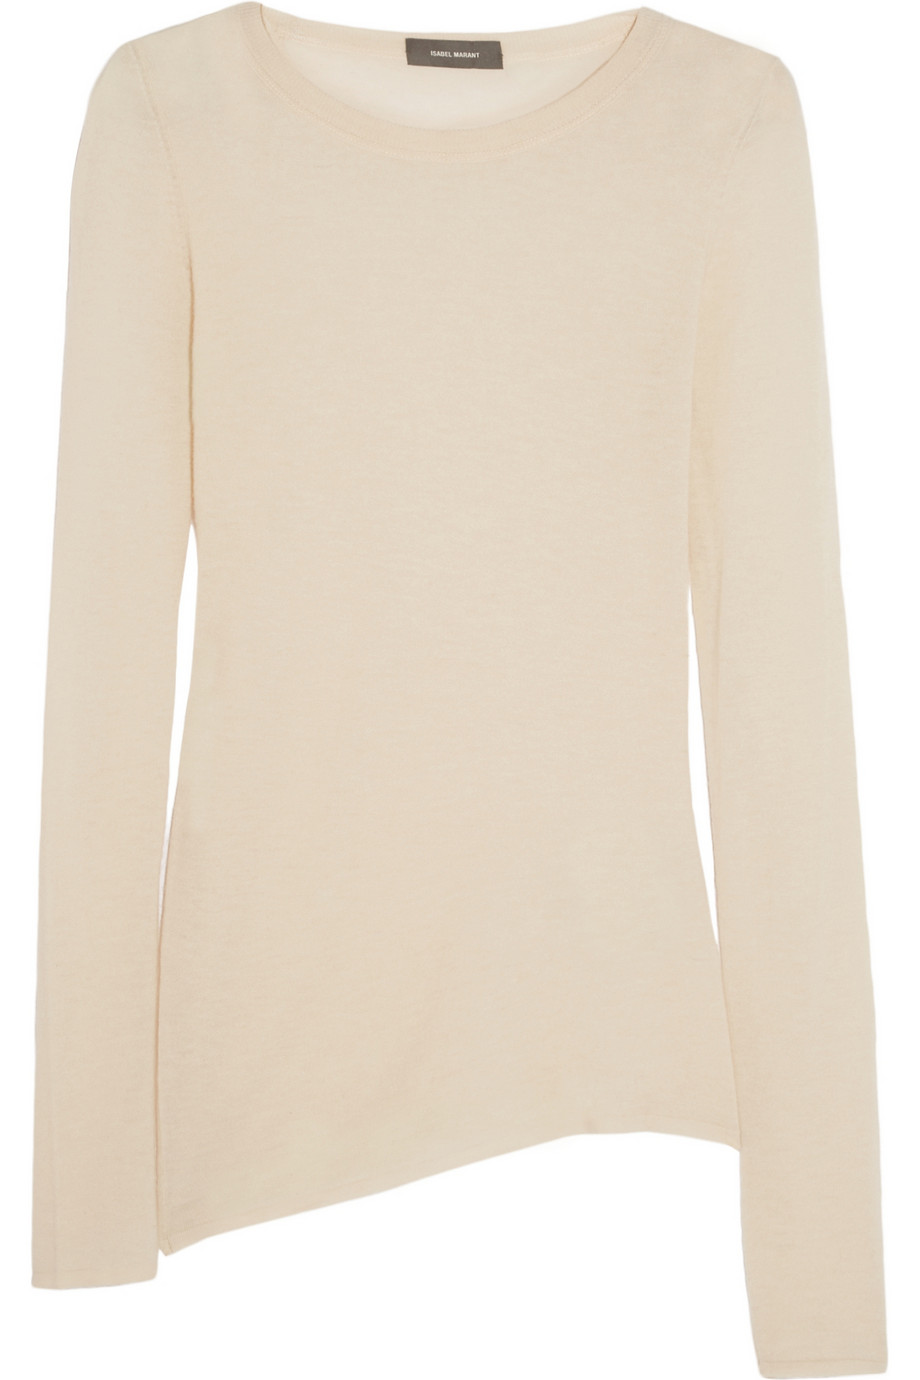 Isabel Marant beige long-sleeve cashmere sweater | source: theoutnet.com